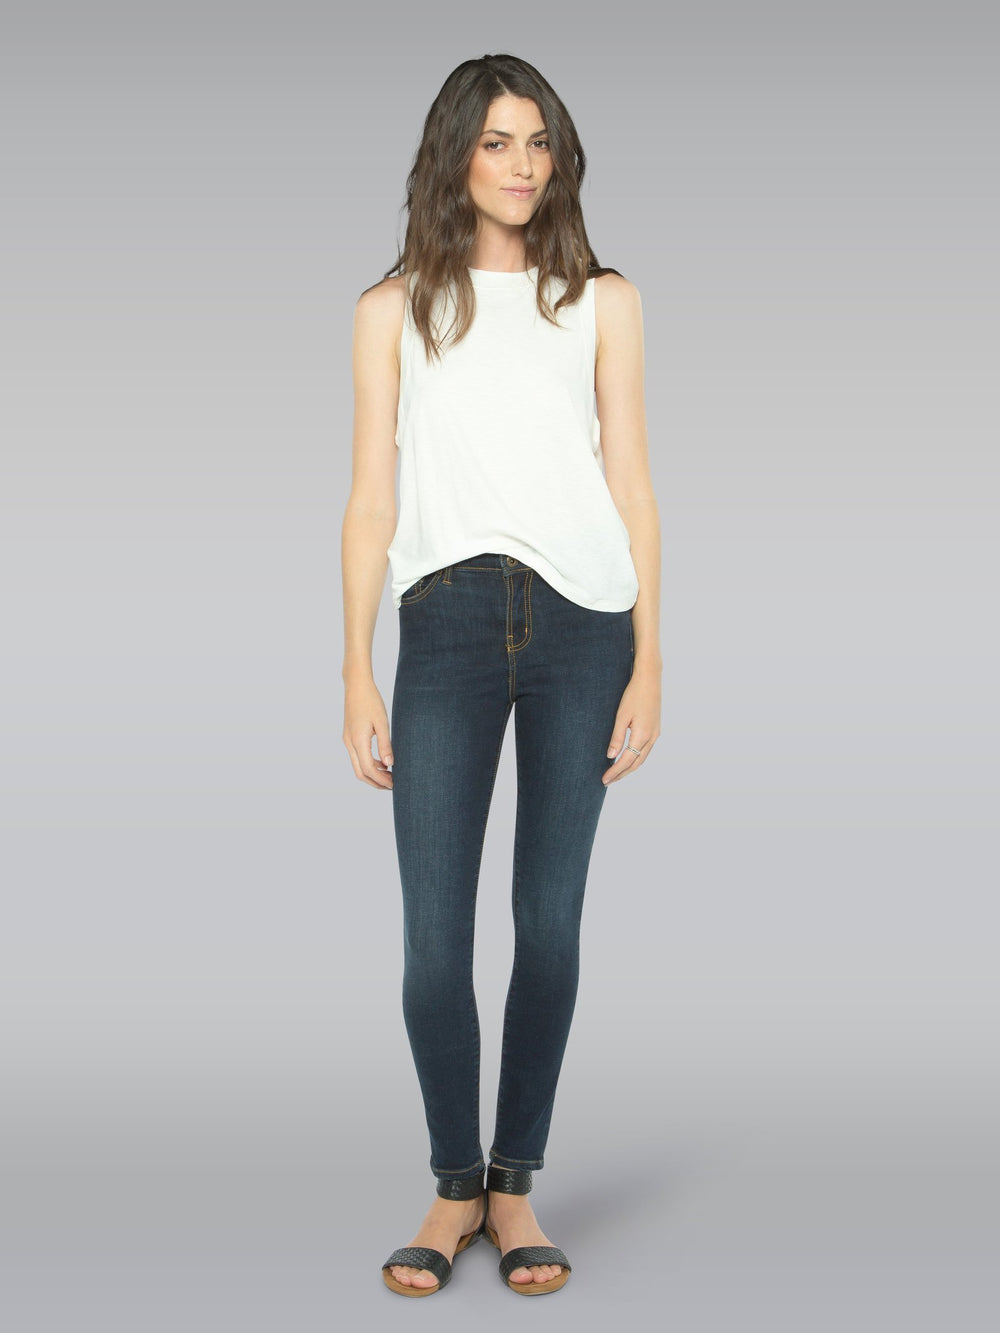 Outland Denim - Isabel Jean in Pacific